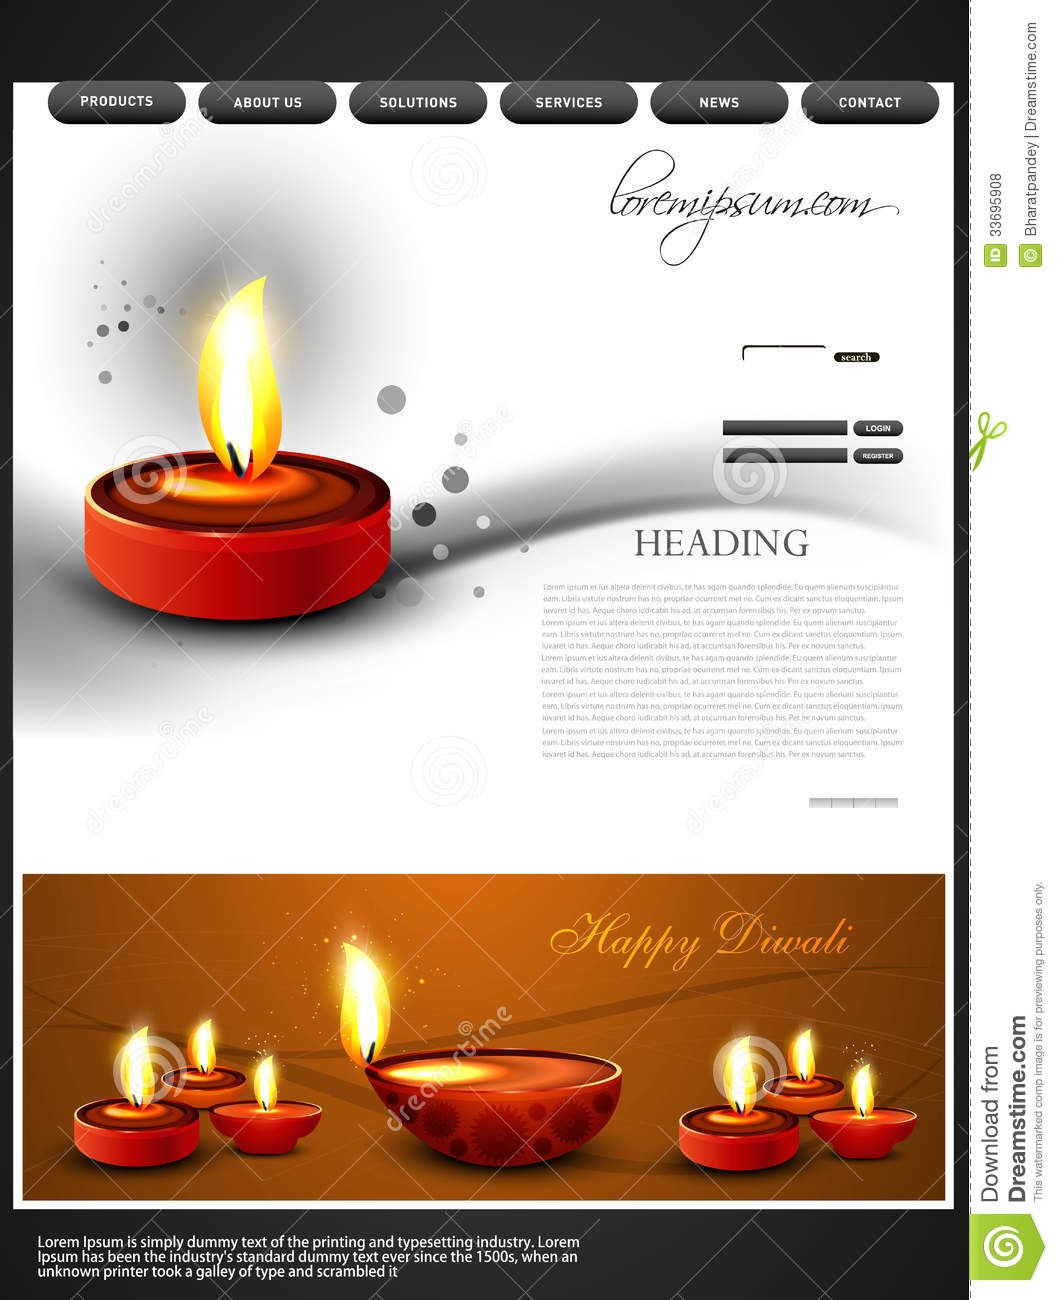 happy hindu dating site Happy diwali 2017  the festival of light sees hindu homes decorated with candles and lights and people sharing gifts - but what is the celebration all about.